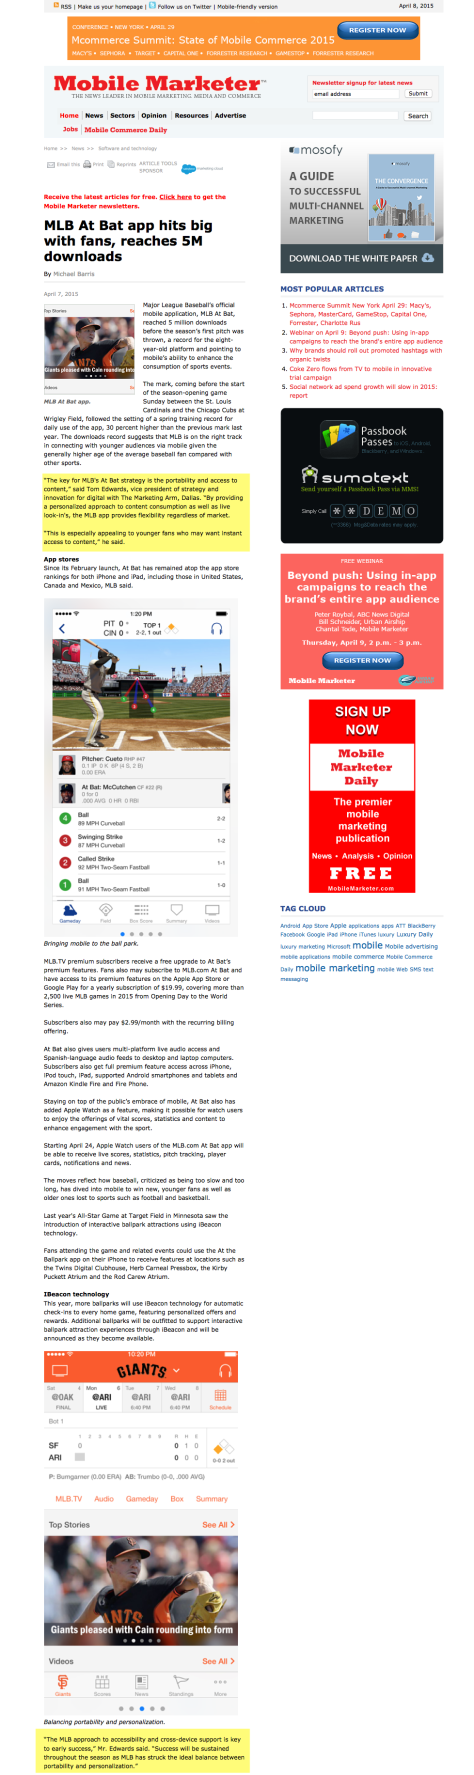 MLB - BlackFin360